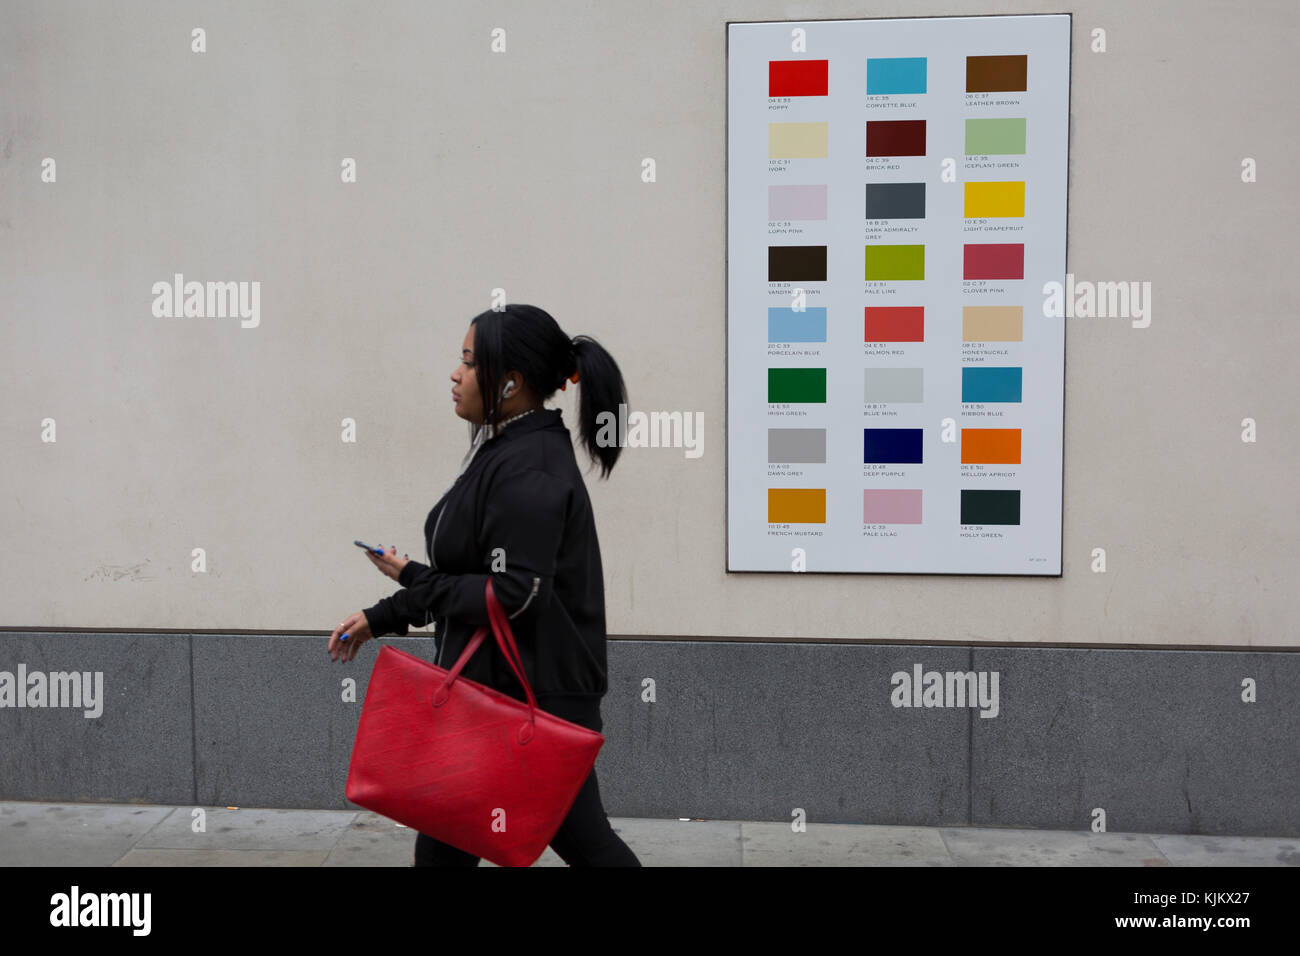 A woman carrying a red bag walks past a colour swatch on the wall of a central London business, on 22nd November - Stock Image